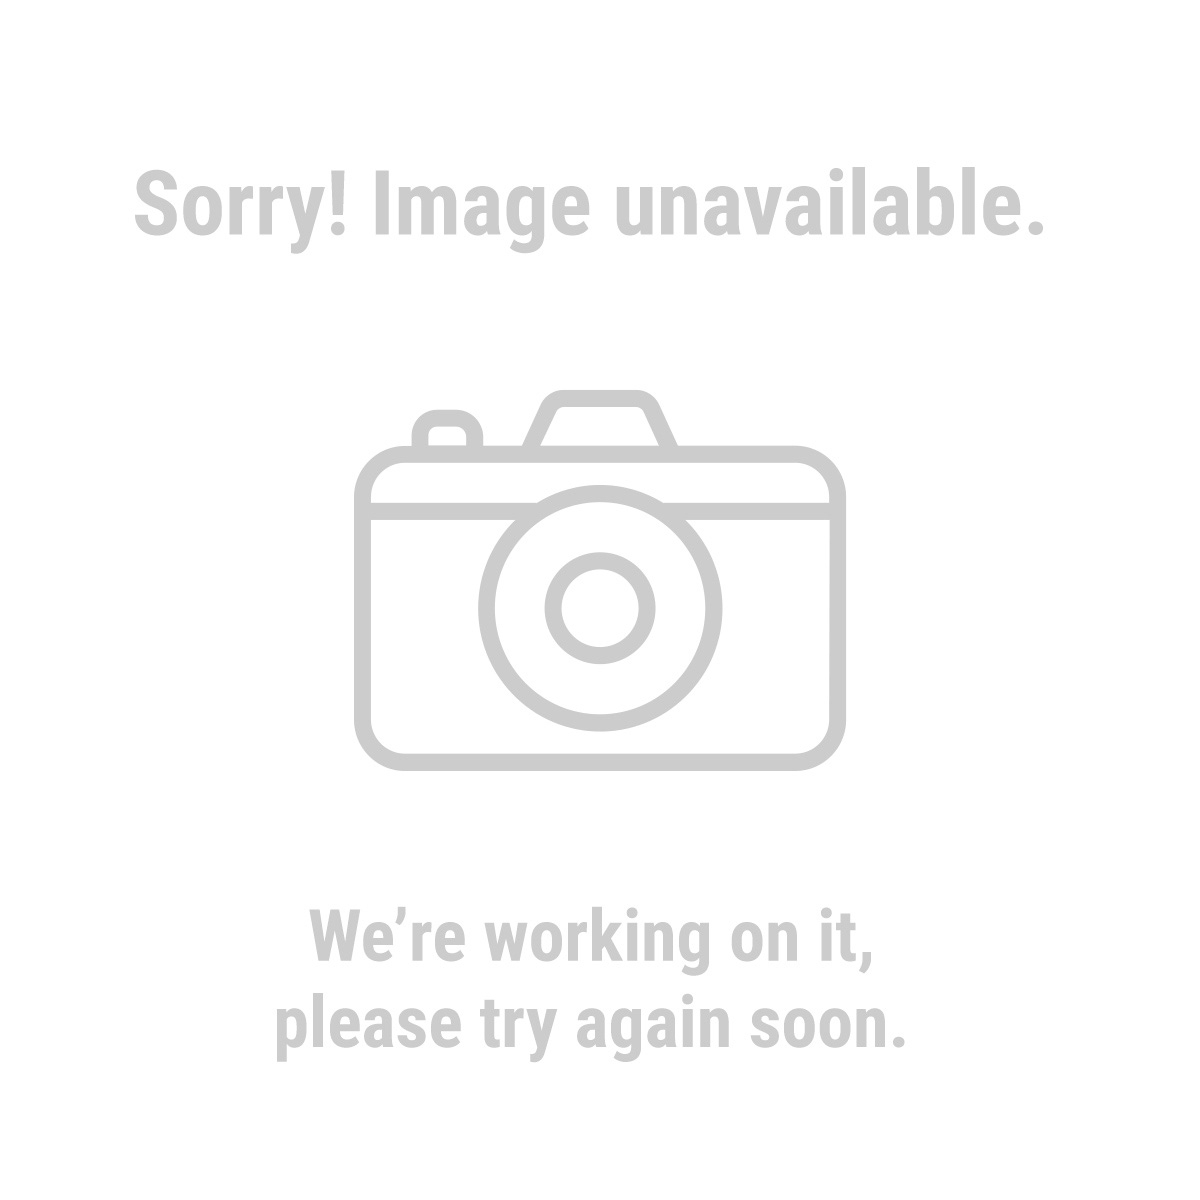 Storehouse 67541 40 Piece Black Nylon Cable Clamp Set